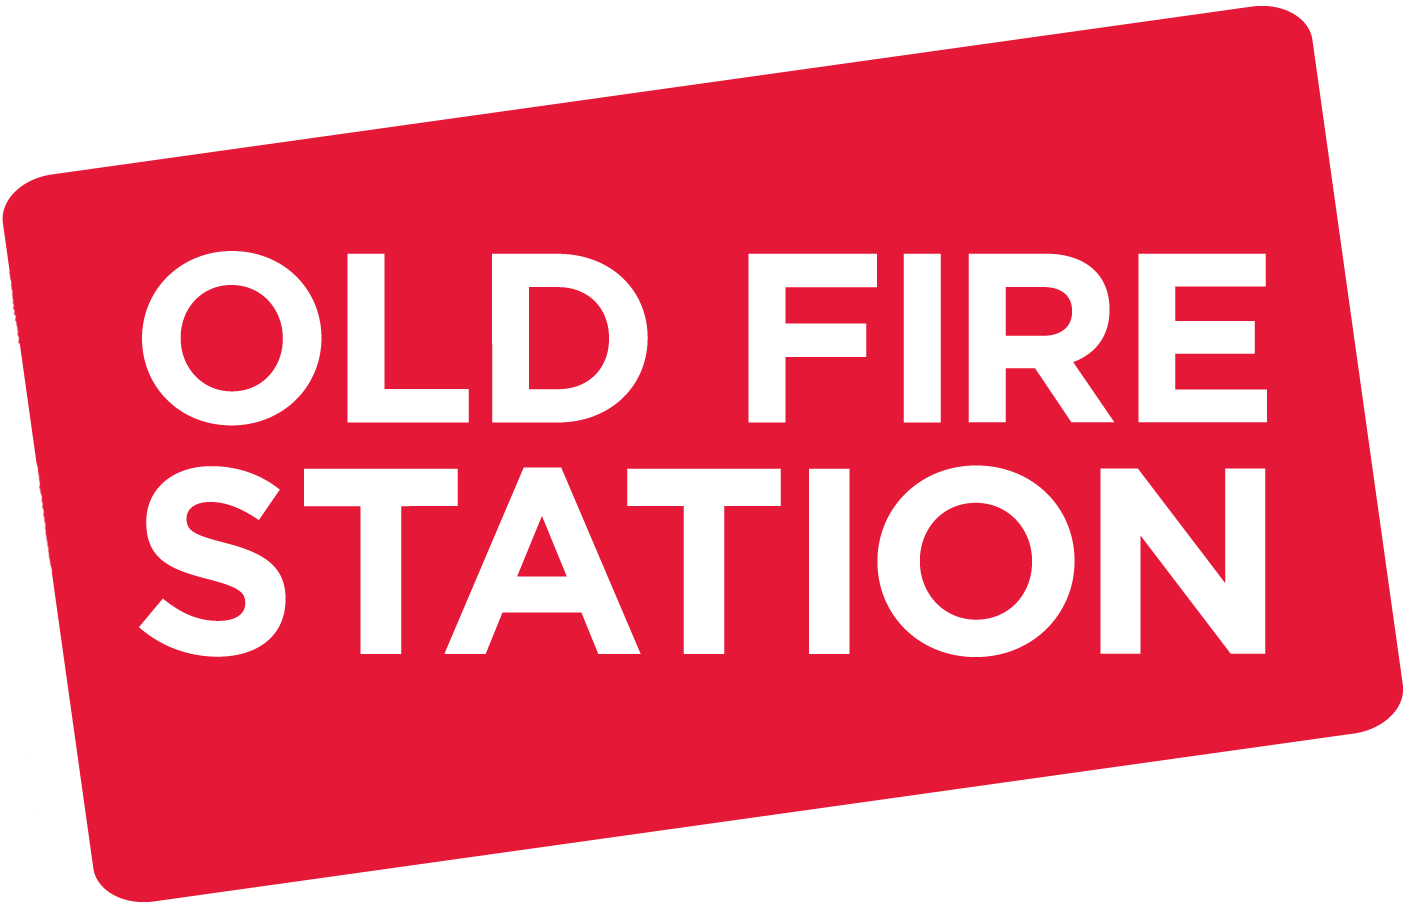 OLD FIRE STATION LOGO.PNG